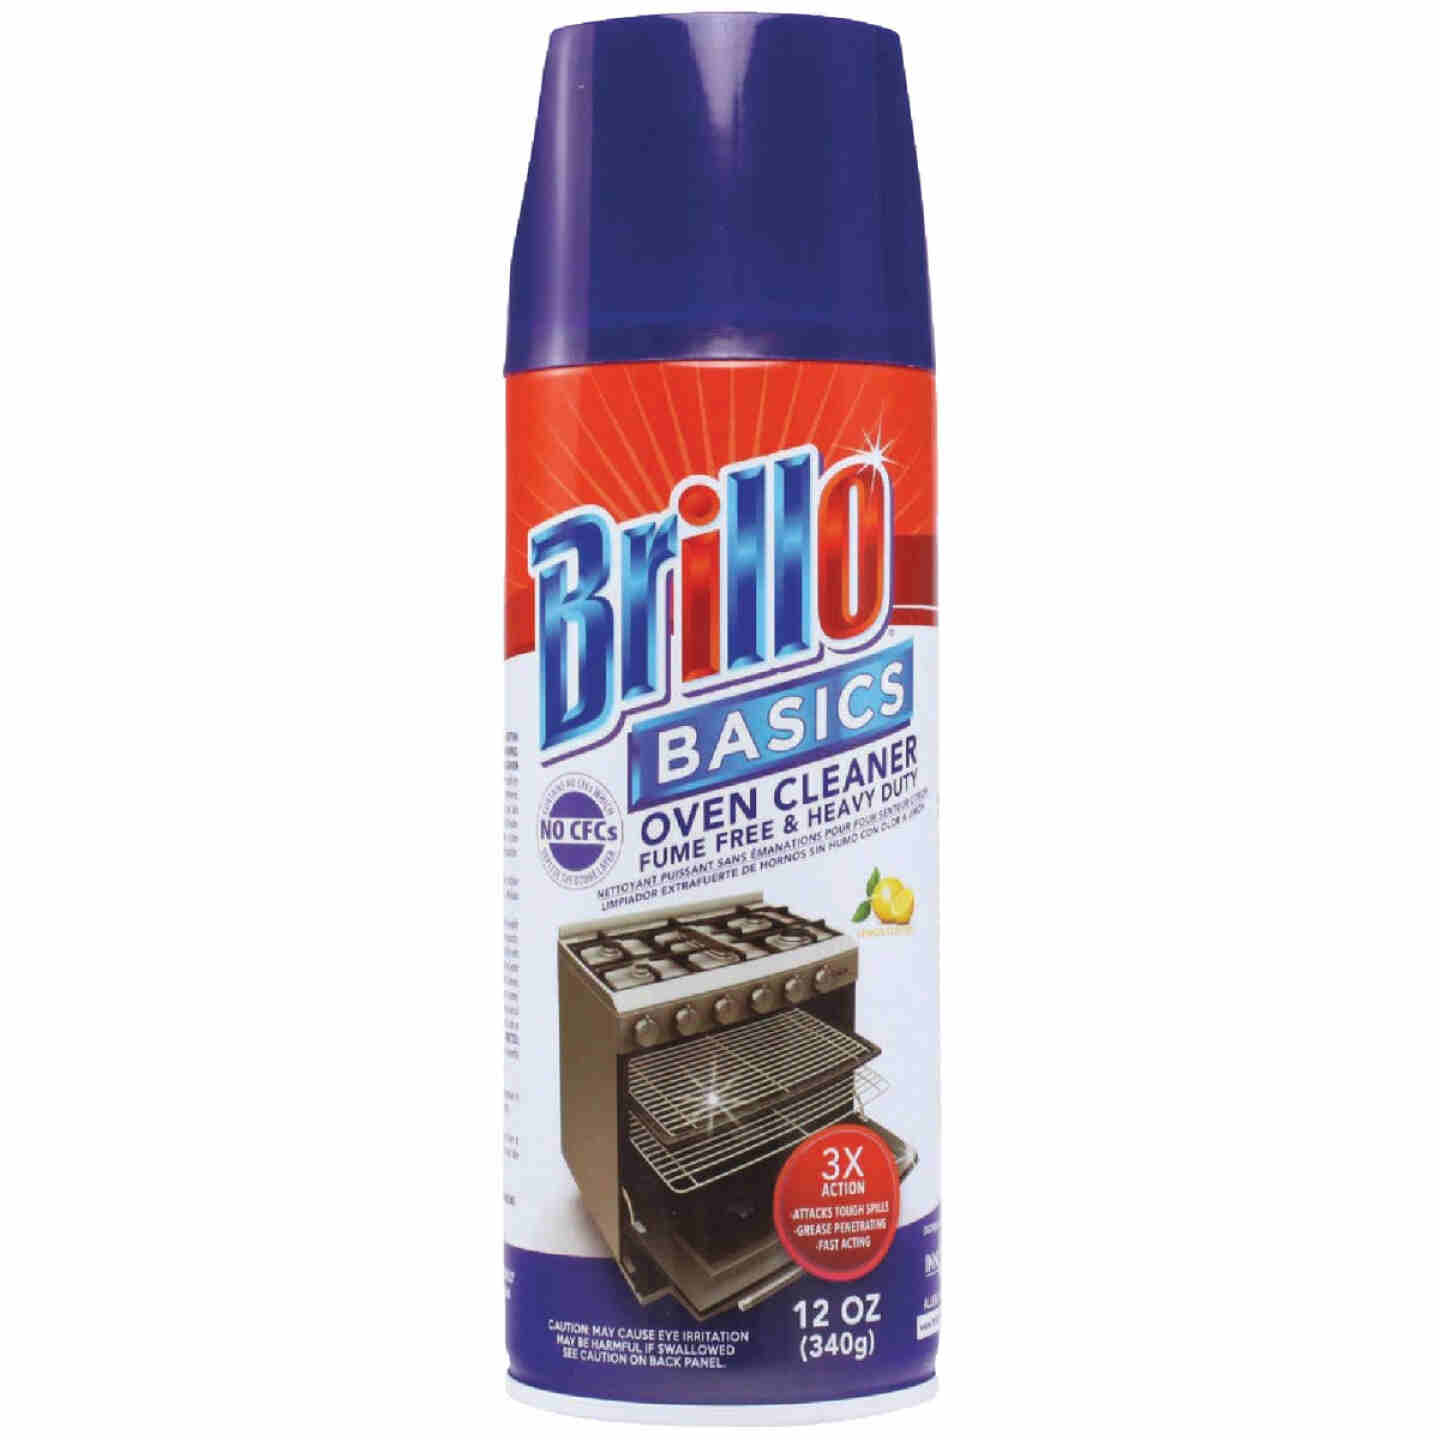 Brillo Basics 12 Oz. Aerosol Oven Cleaner Image 1